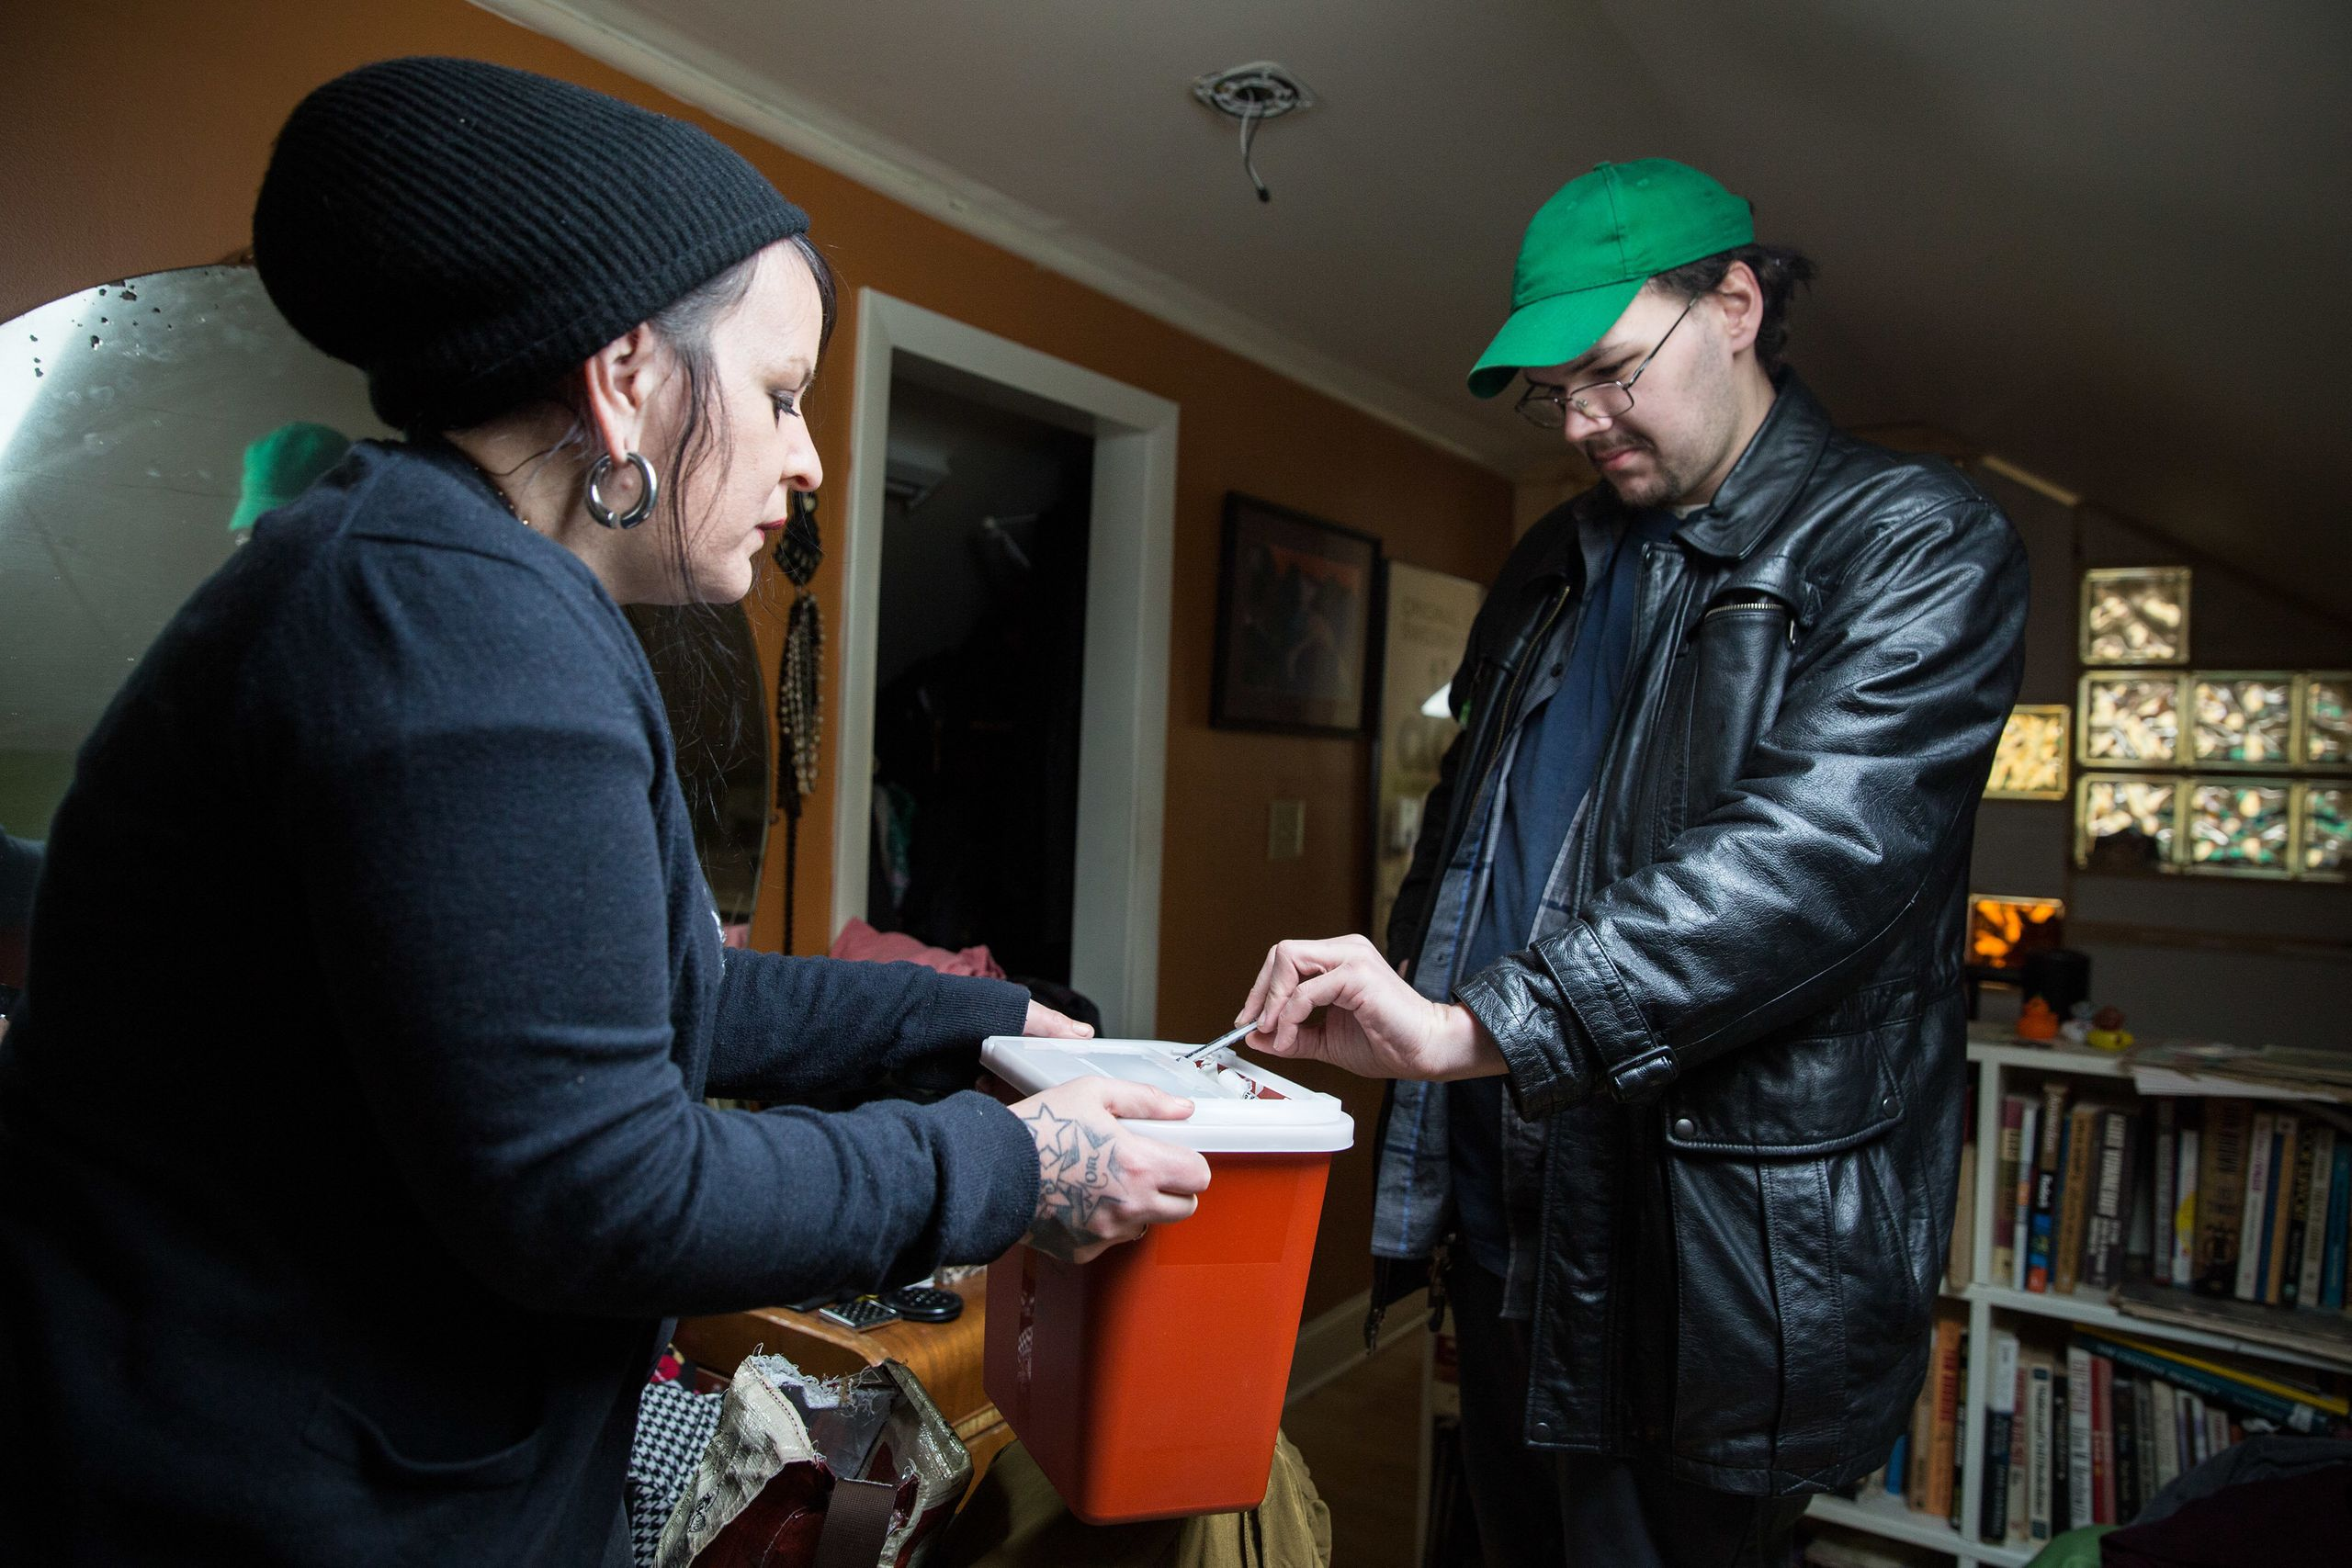 Tilley holds out a safe medical waste container for Joe Worpek to deposit his used syringes.